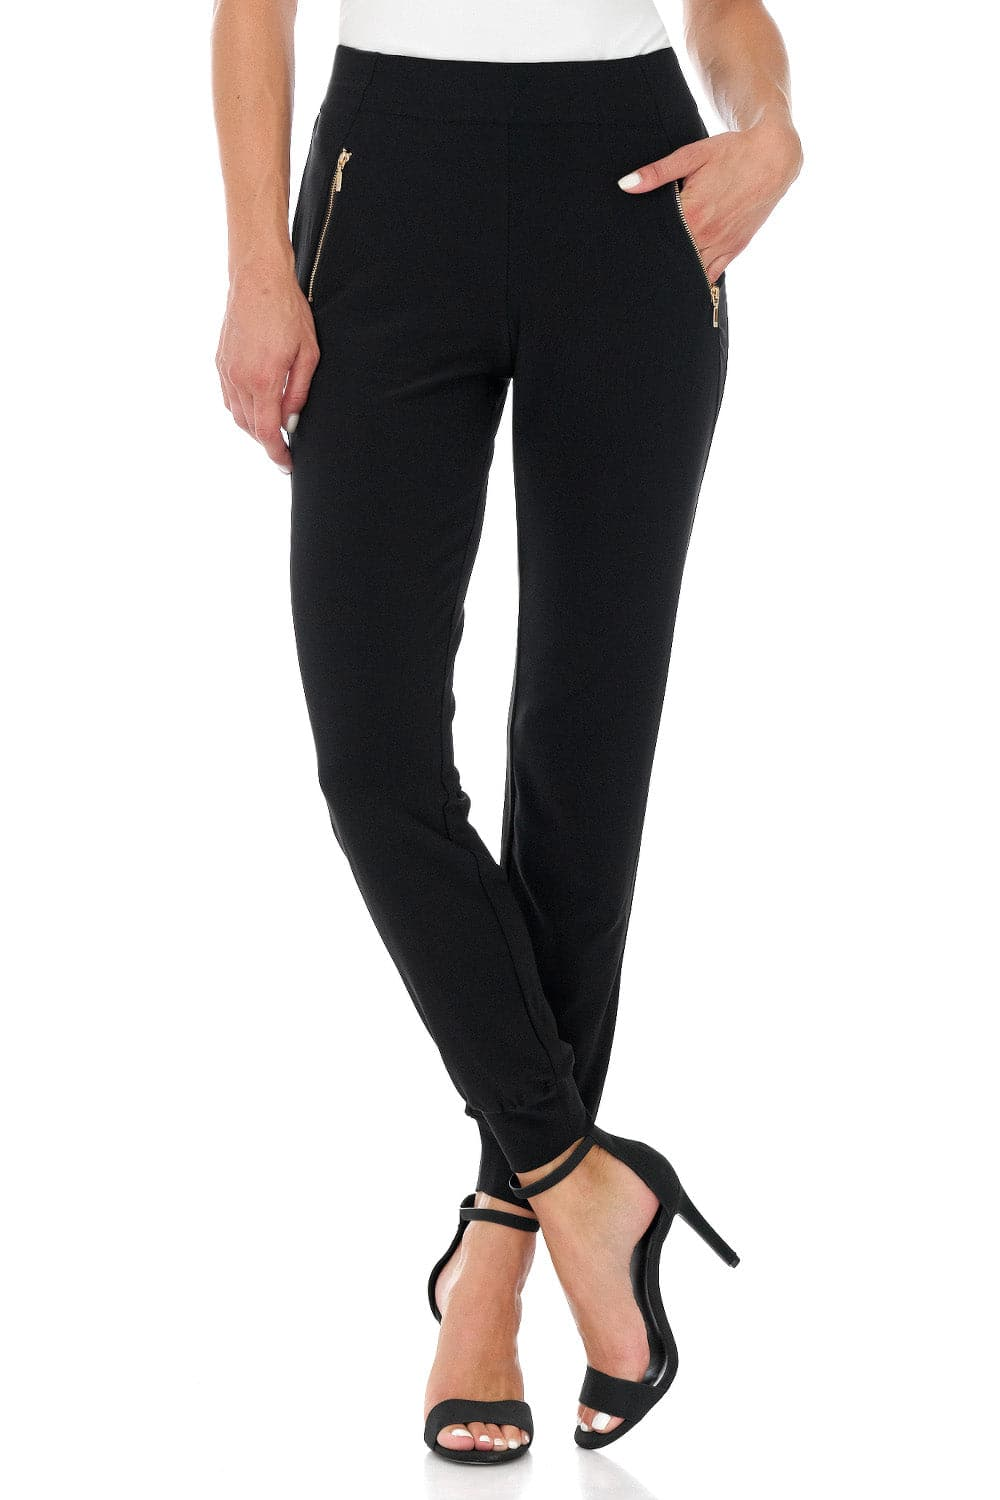 Travel-in-Style Dress Pants with Metal Zippers